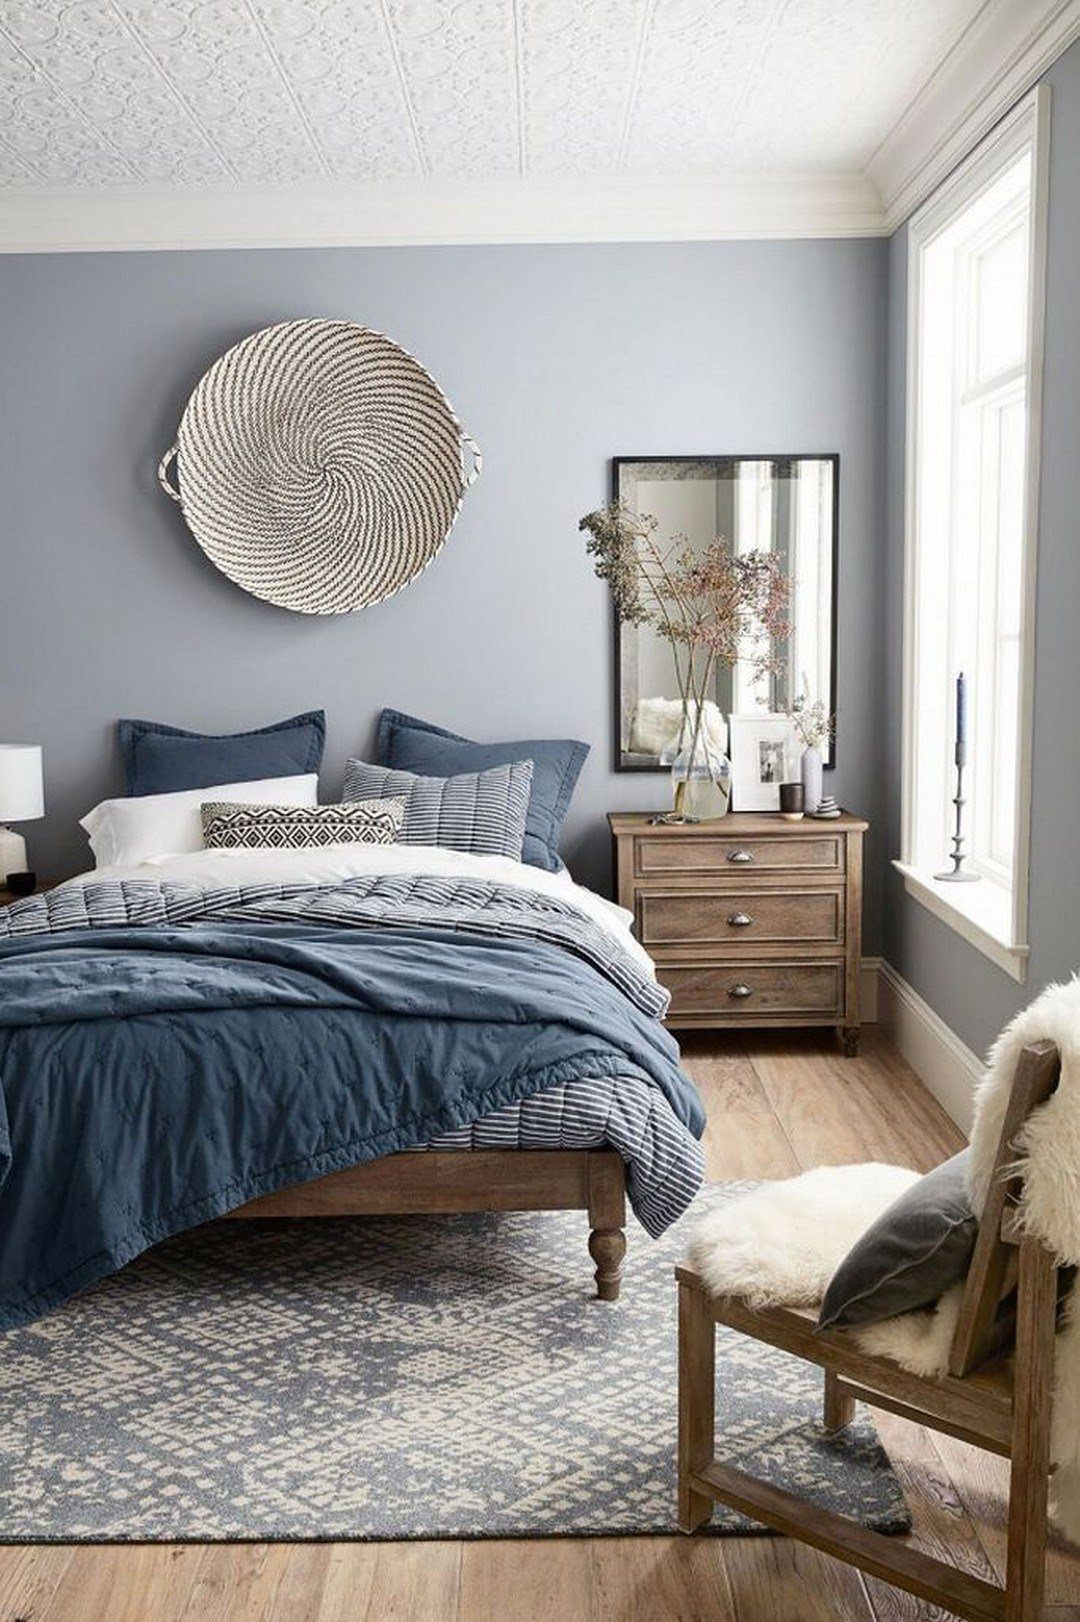 Best 72 Beautiful Master Bedroom Decorating Ideas Onechitecture With Pictures